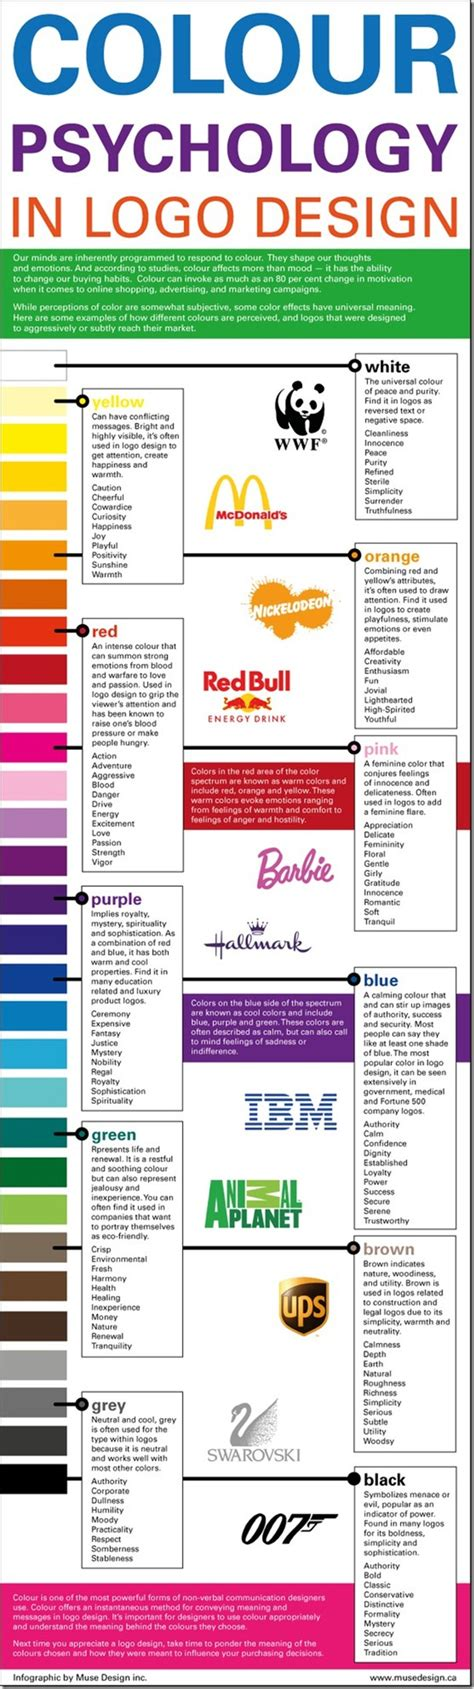 Color Company Colour   from color to cash how brand color motivates buyers